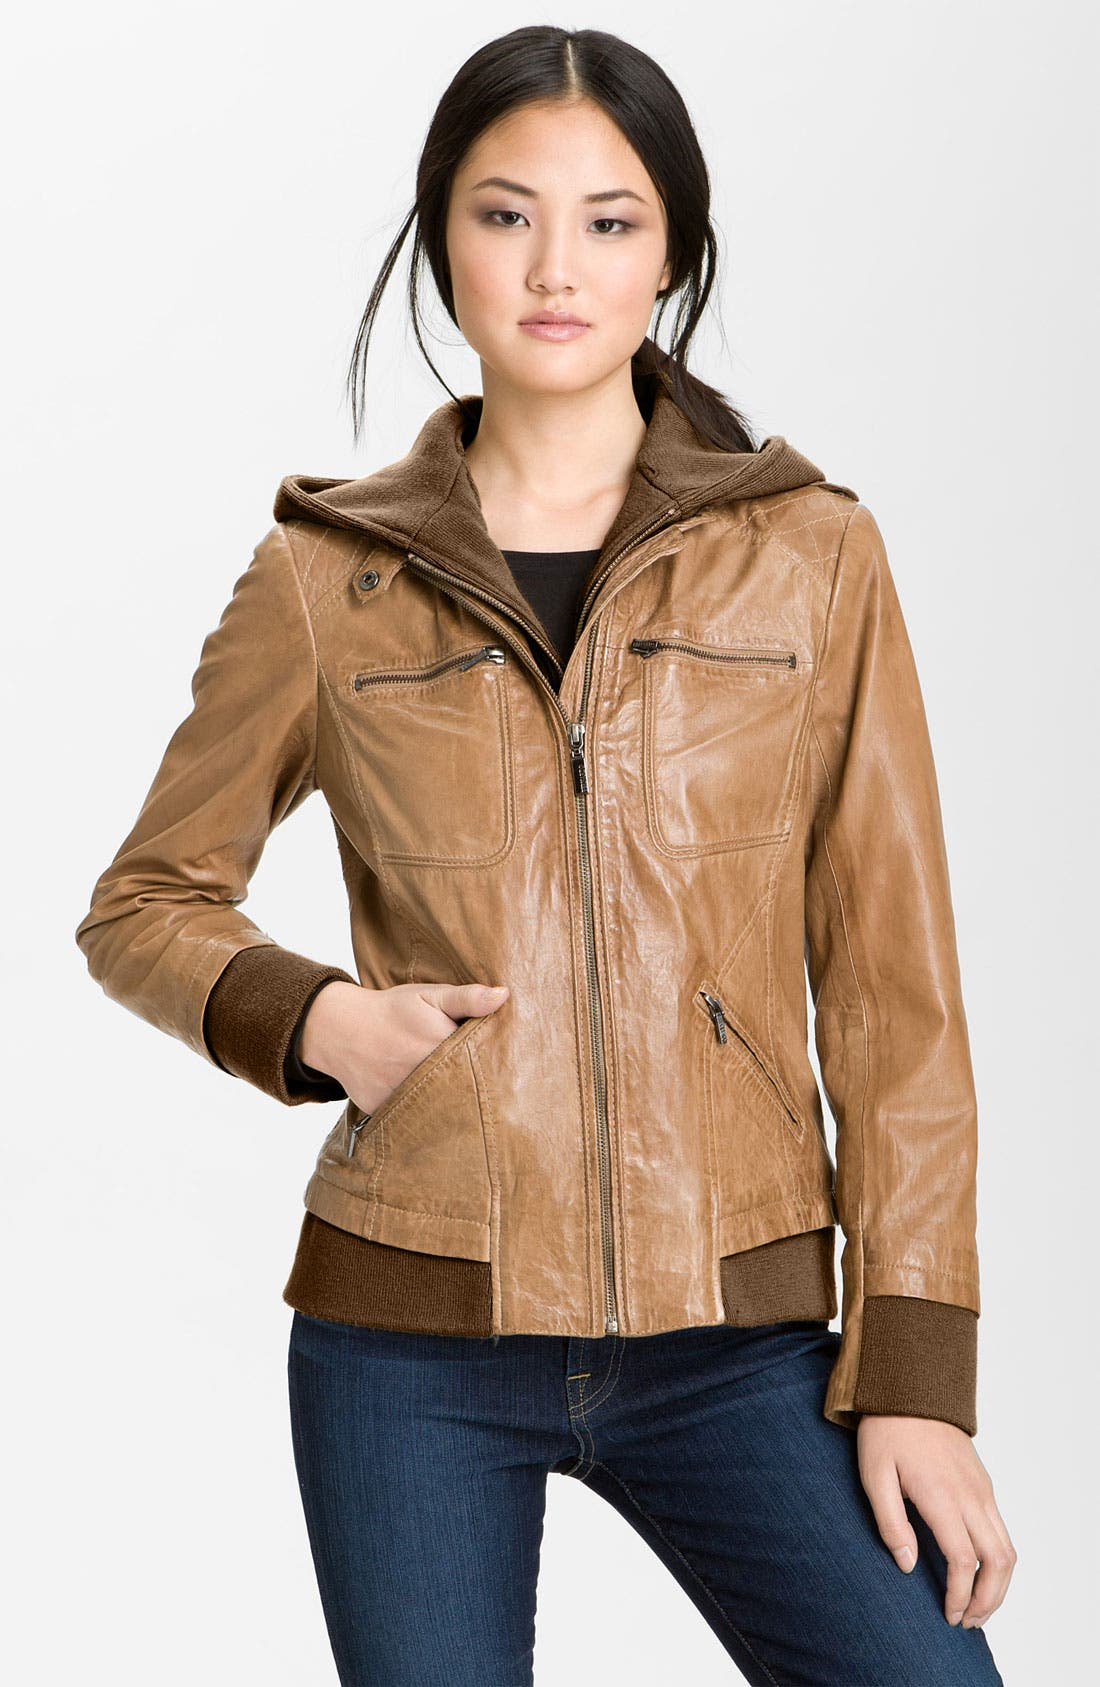 Alternate Image 1 Selected - Bernardo Leather Bomber Jacket with Detachable Hoodie Liner